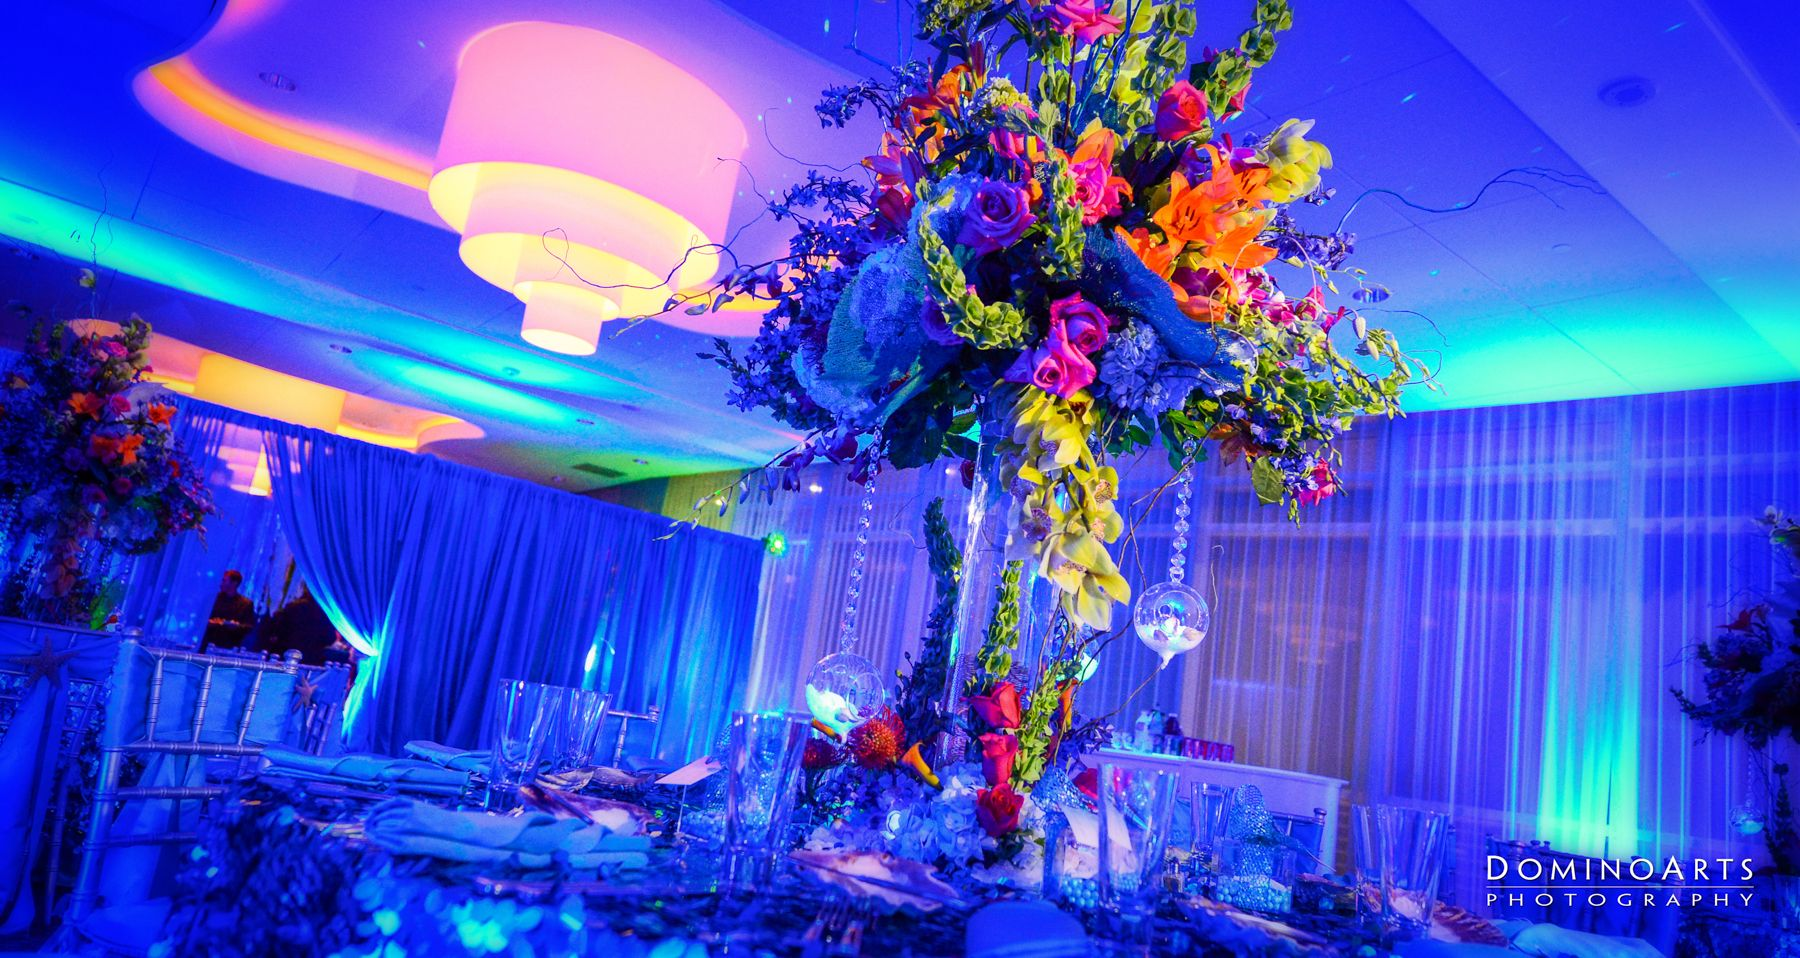 Bar mitzvah decor south florida mitzvah production by 84 west events - Miami Bat Mitzvah Danielle Guenther S Under The Sea Themed Party Domino Arts